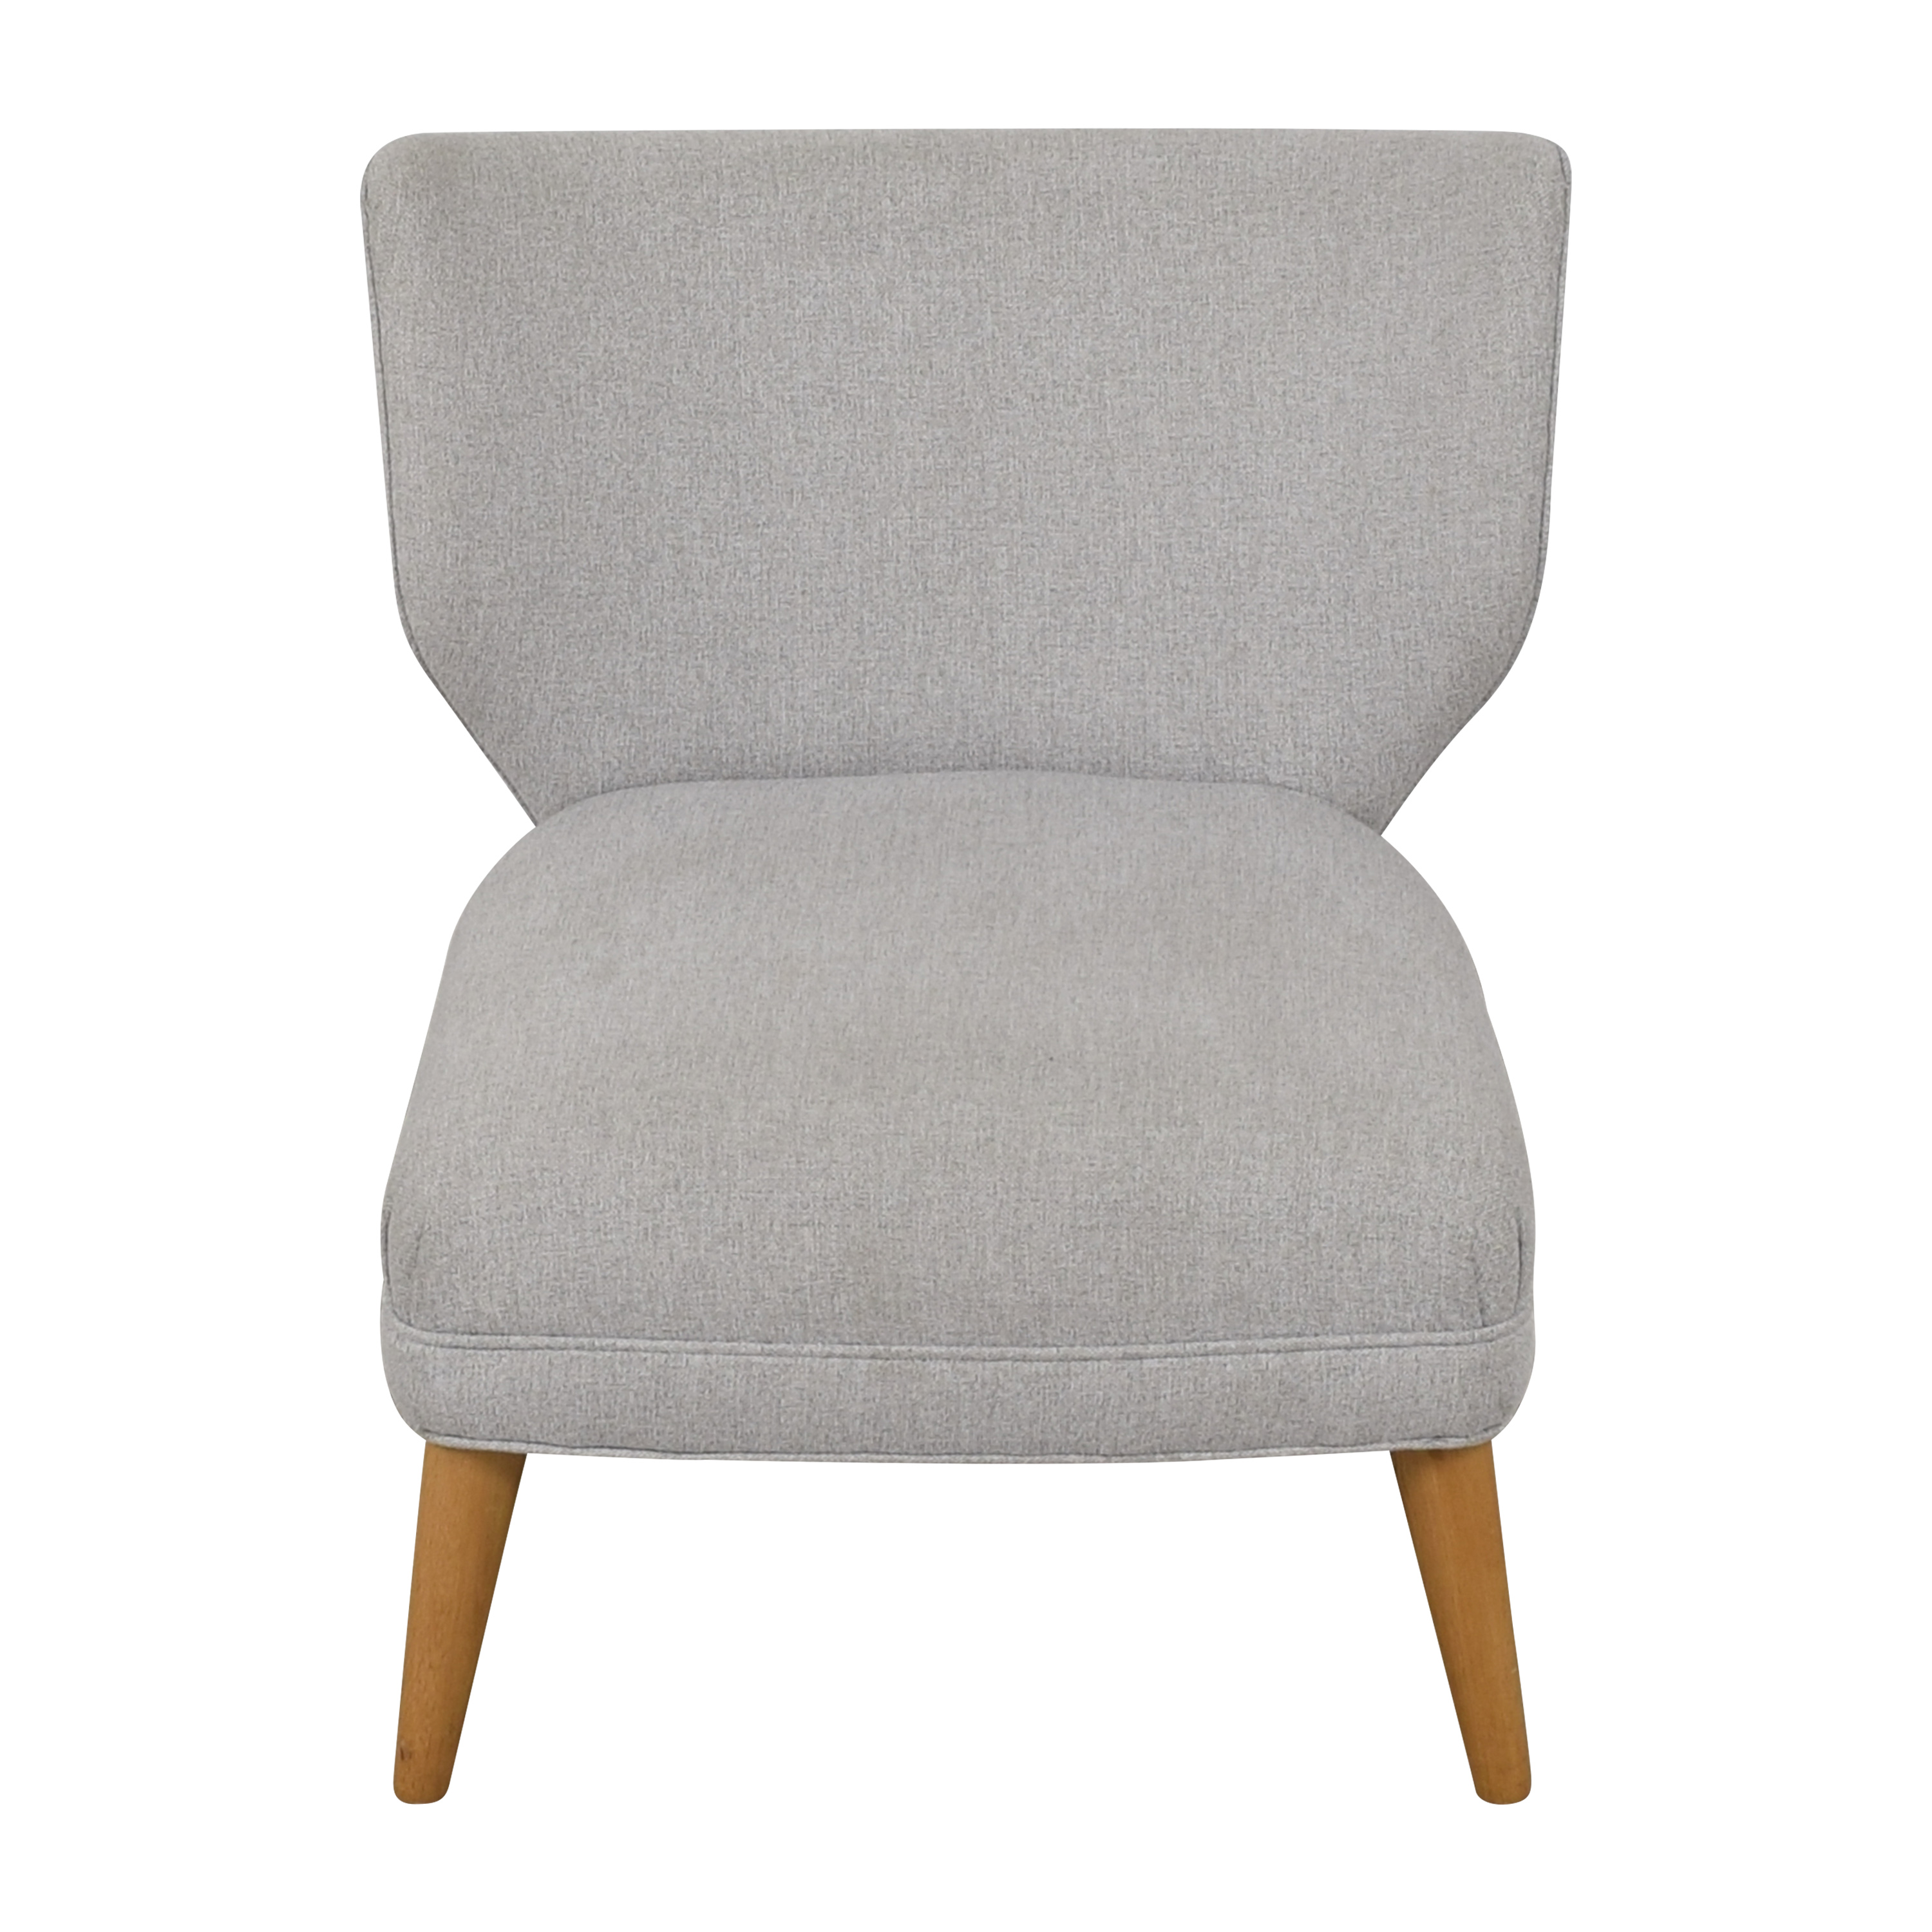 West Elm Retro Wing Chair / Chairs